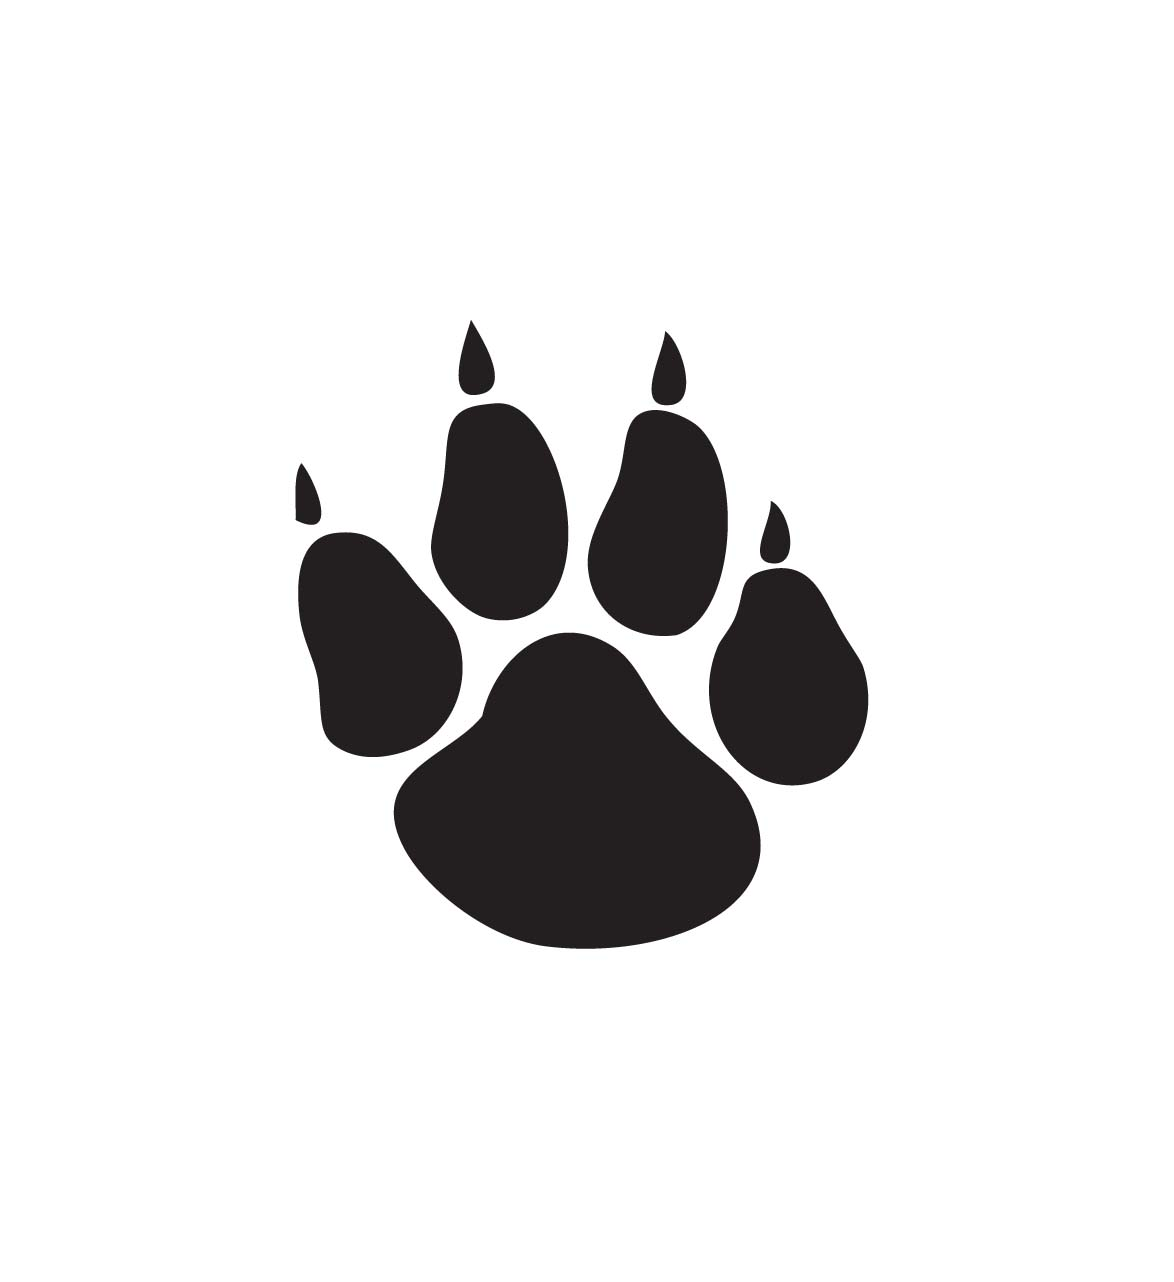 Paw Prints clipart #6, Download drawings